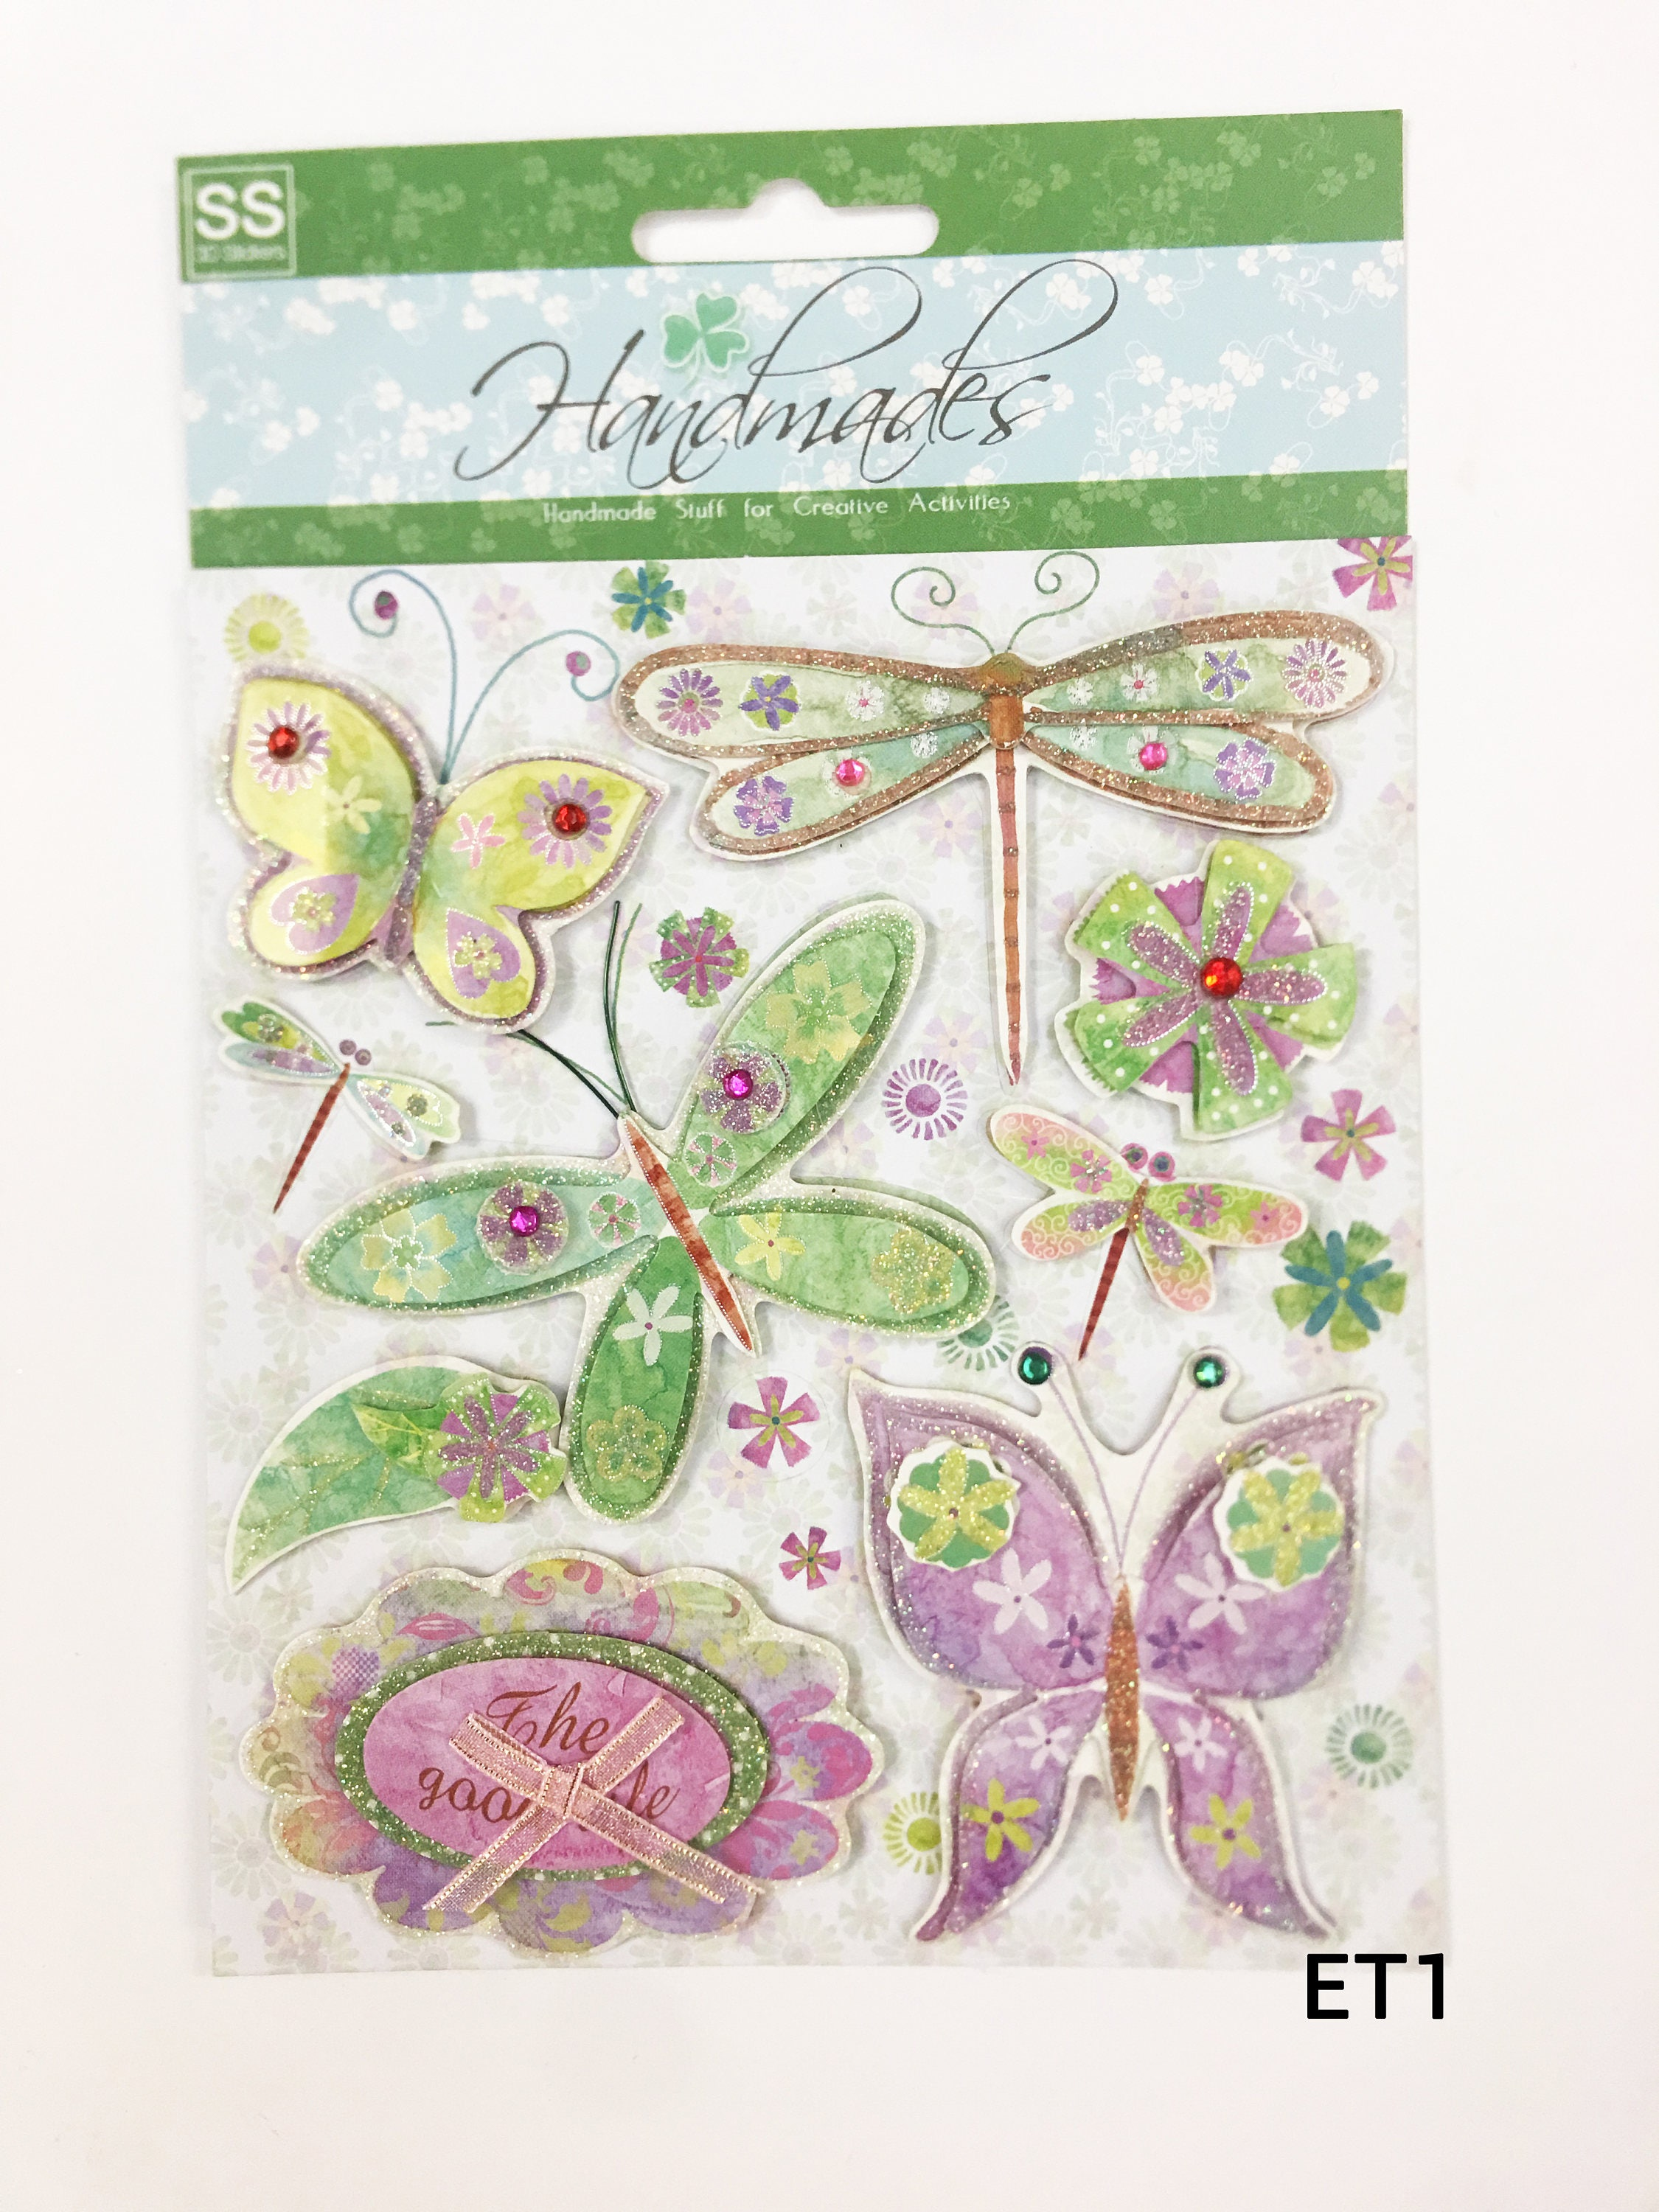 for Greeting cards//Craft Projects. Handmade Embellishment//Topper